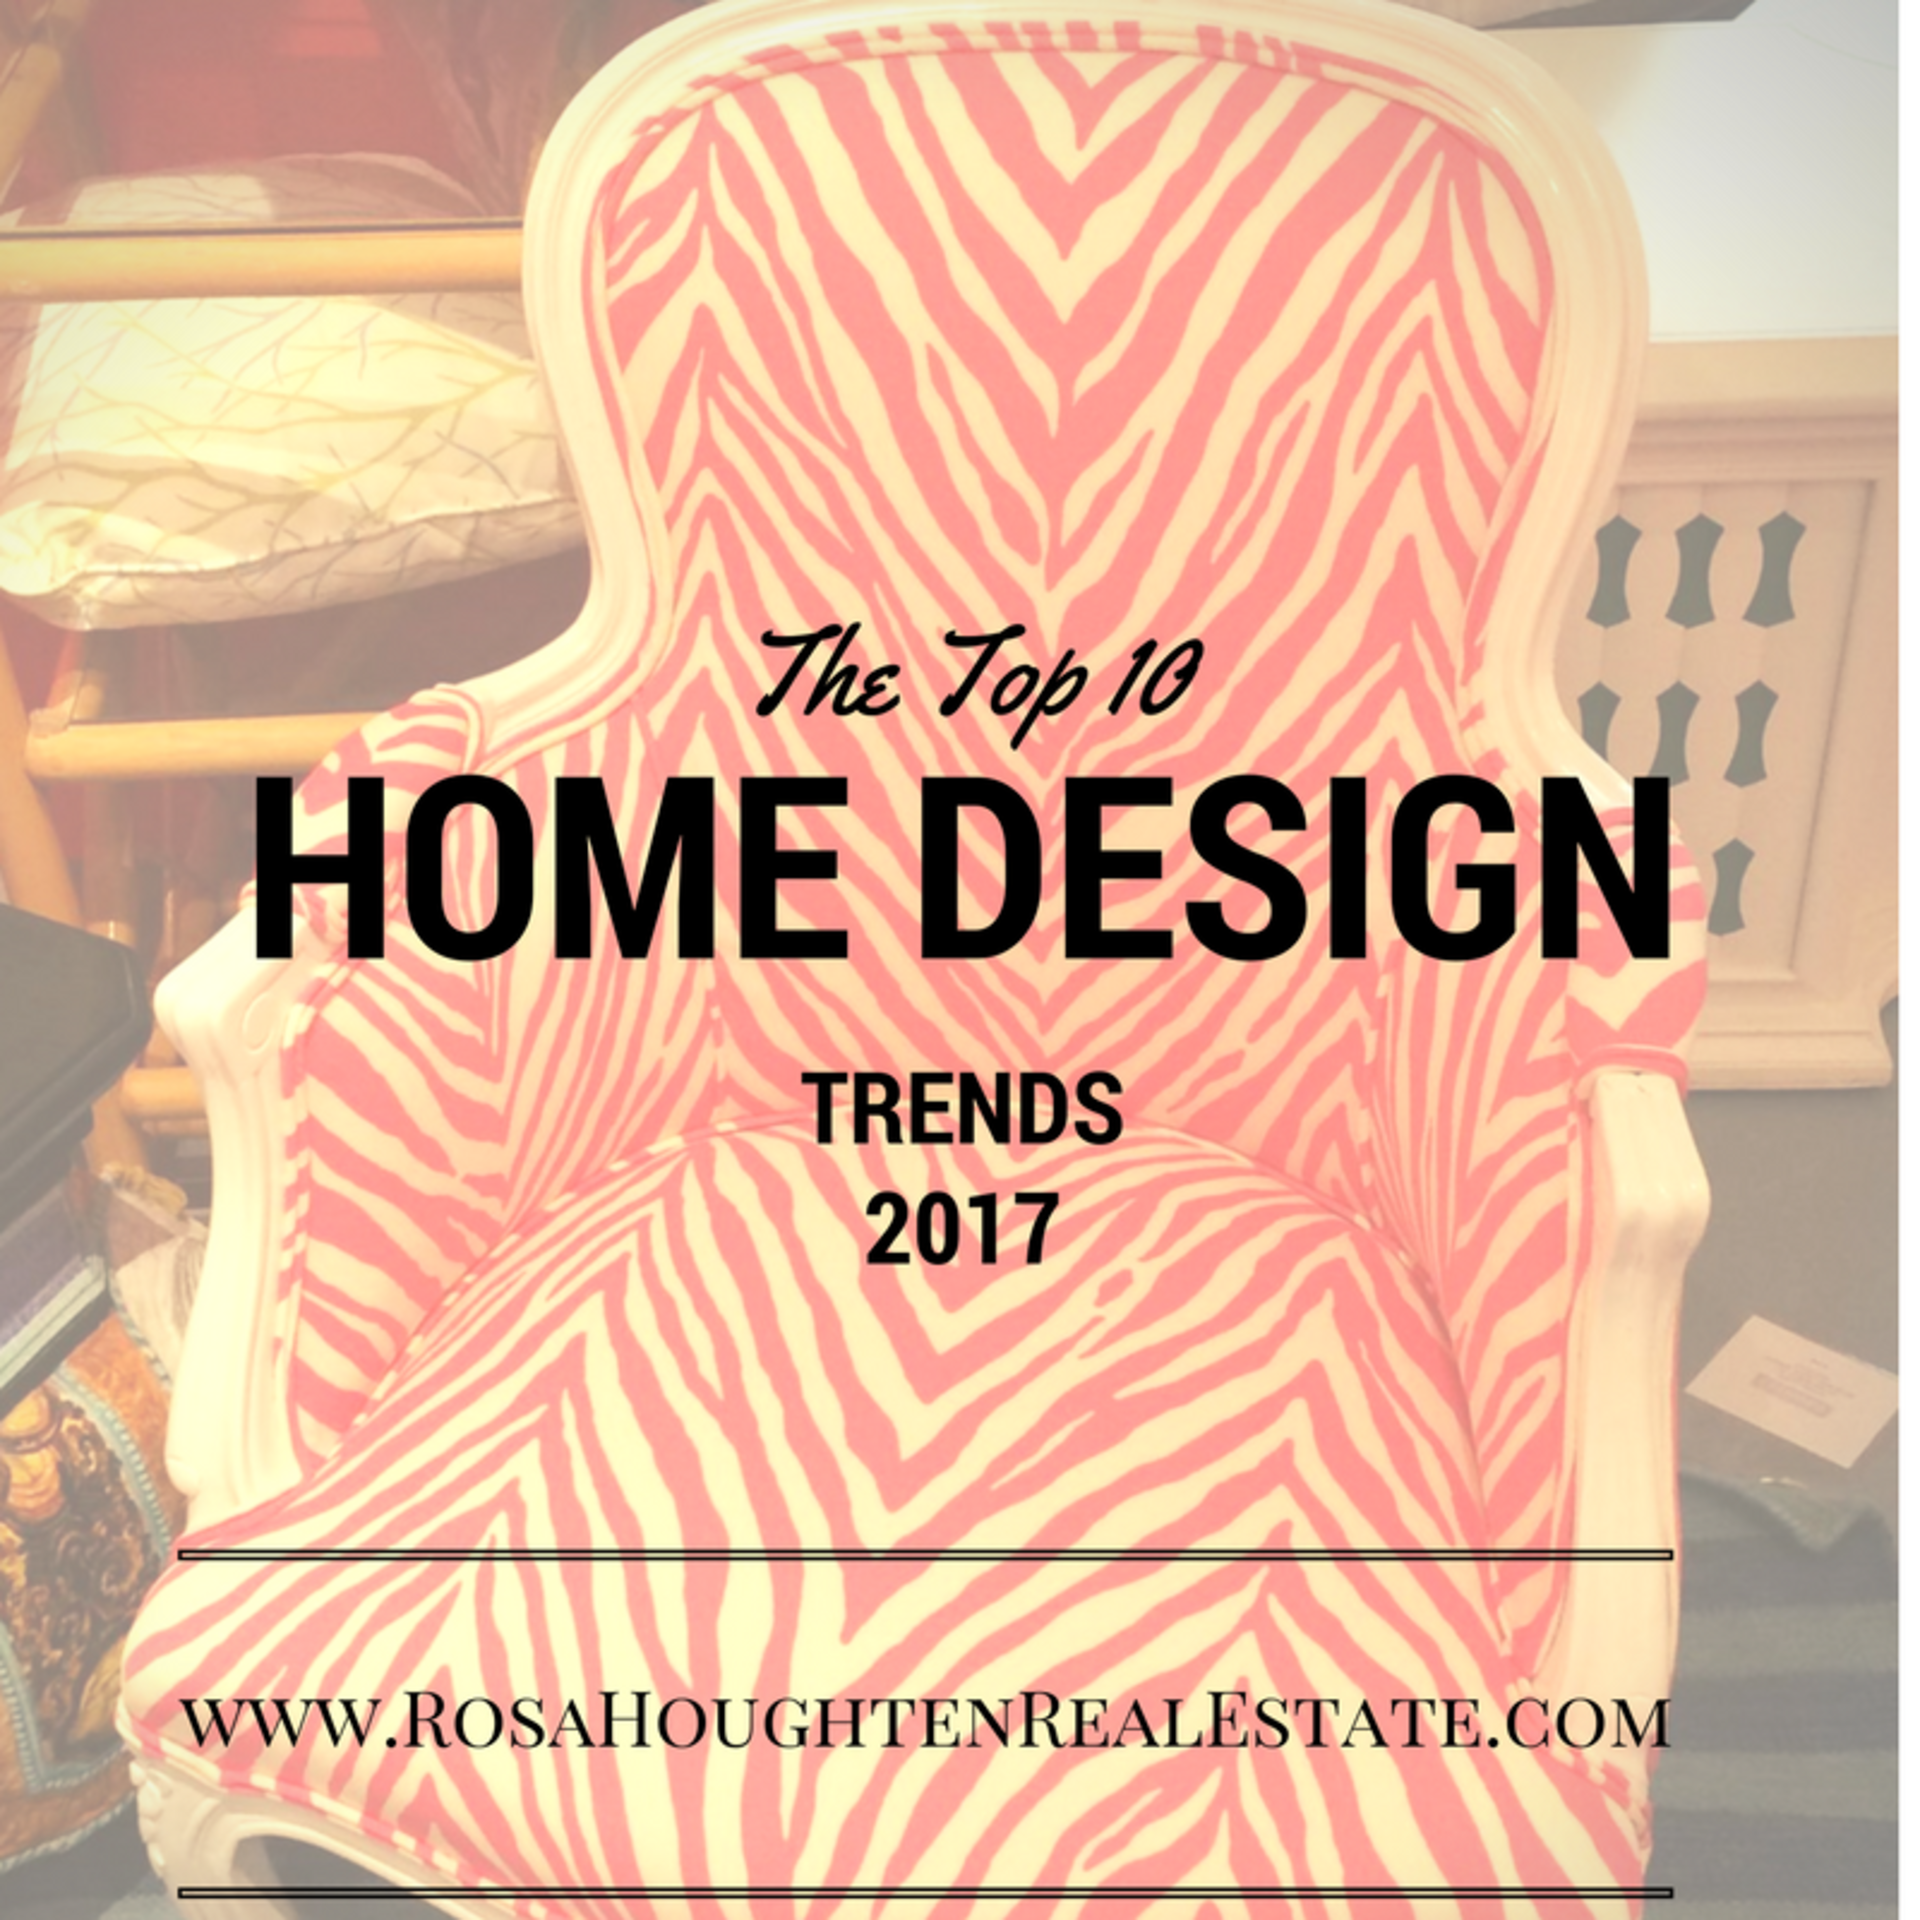 7 Home Design Trends To Watch In 2017